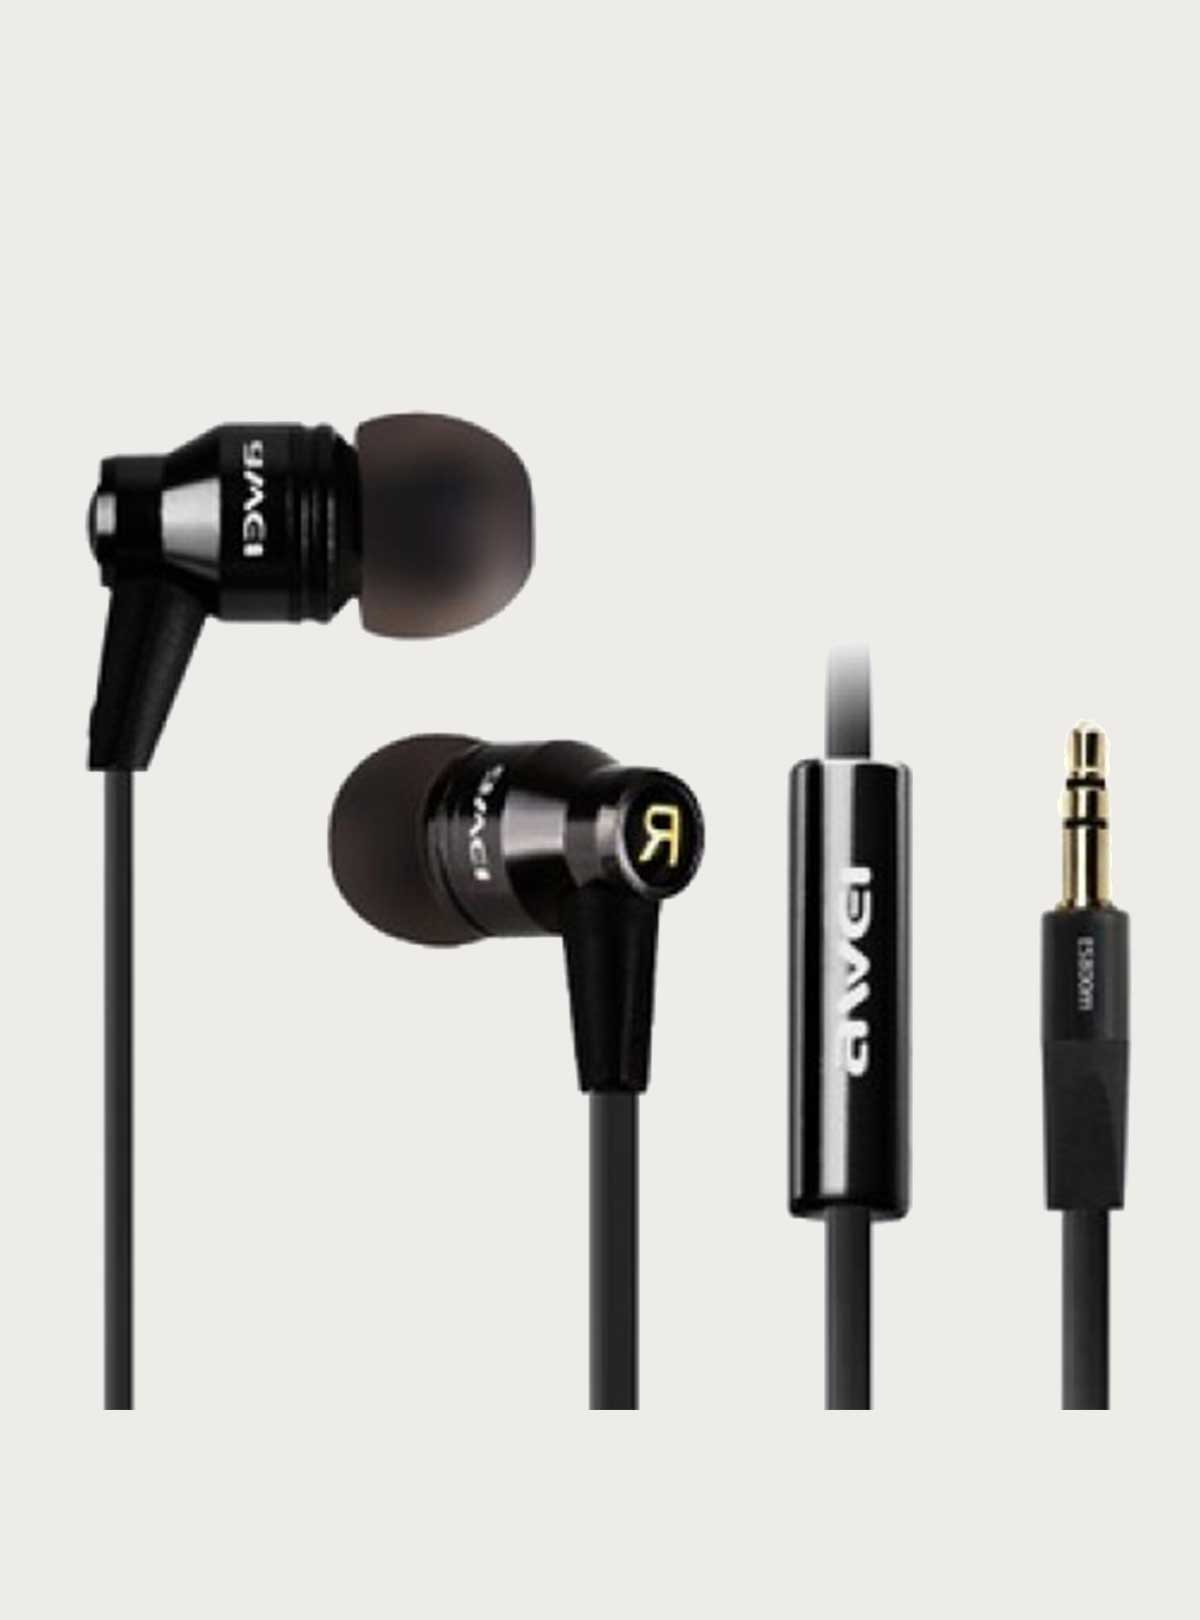 Awei Es-800m Noise Isolating Hi-definition Aluminum Alloy In-earphones